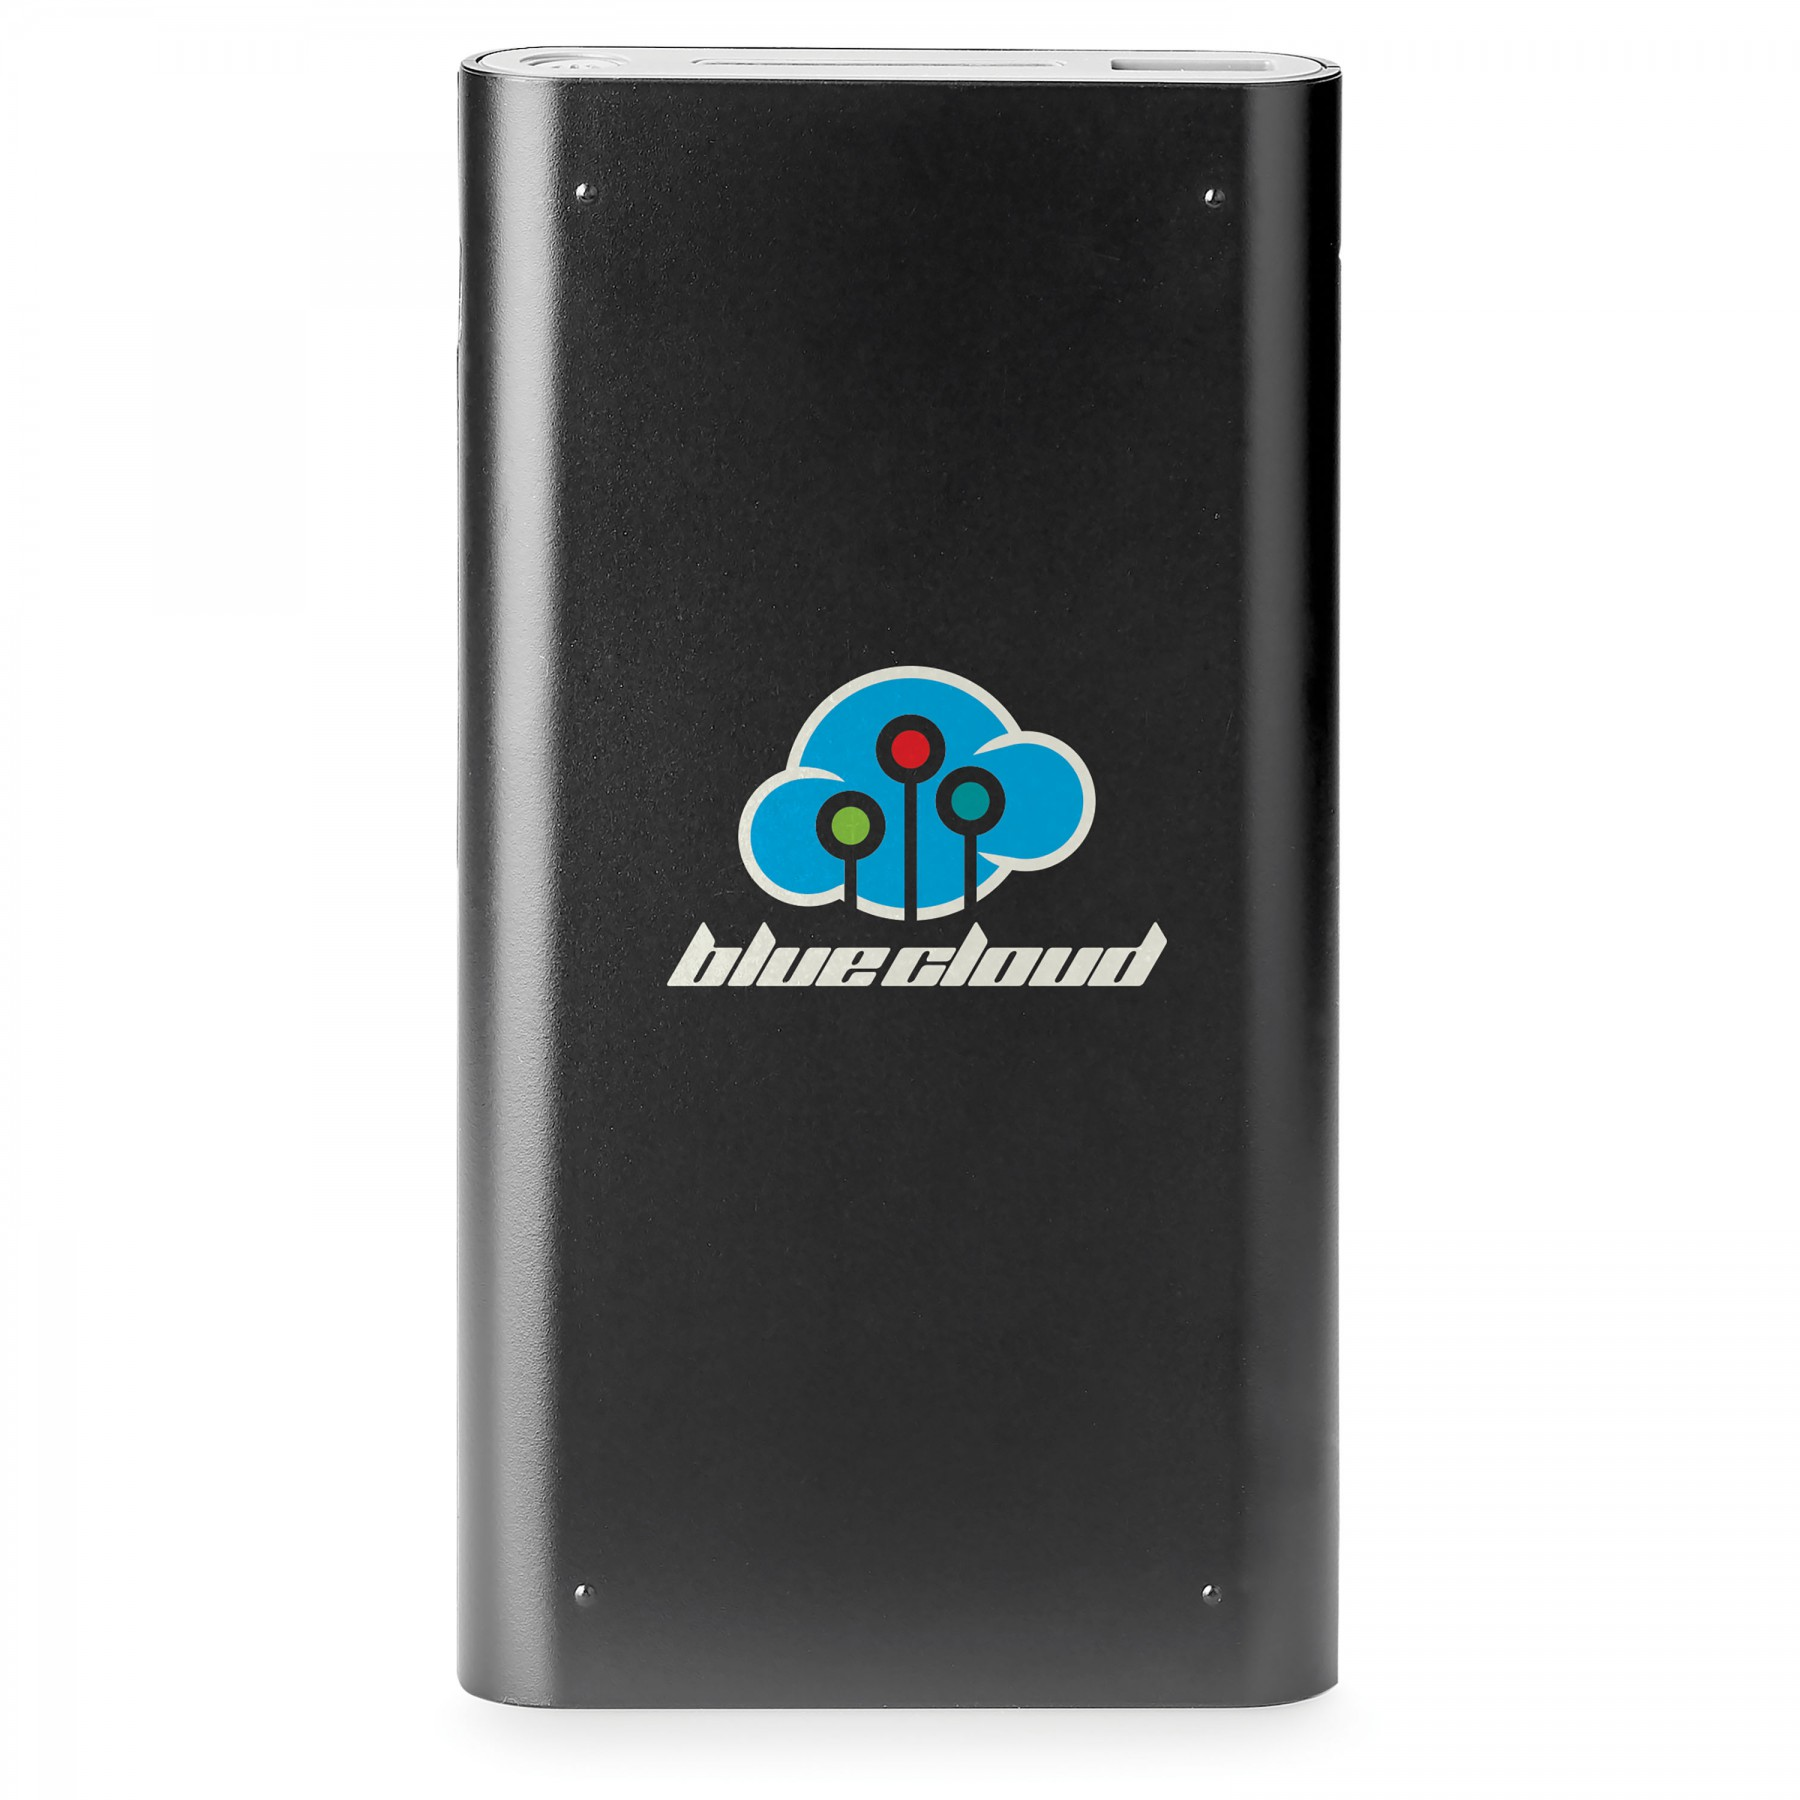 TITAN 4,000 mAh WIRELESS POWER BANK UL2738, T1039, Full Colour Imprint